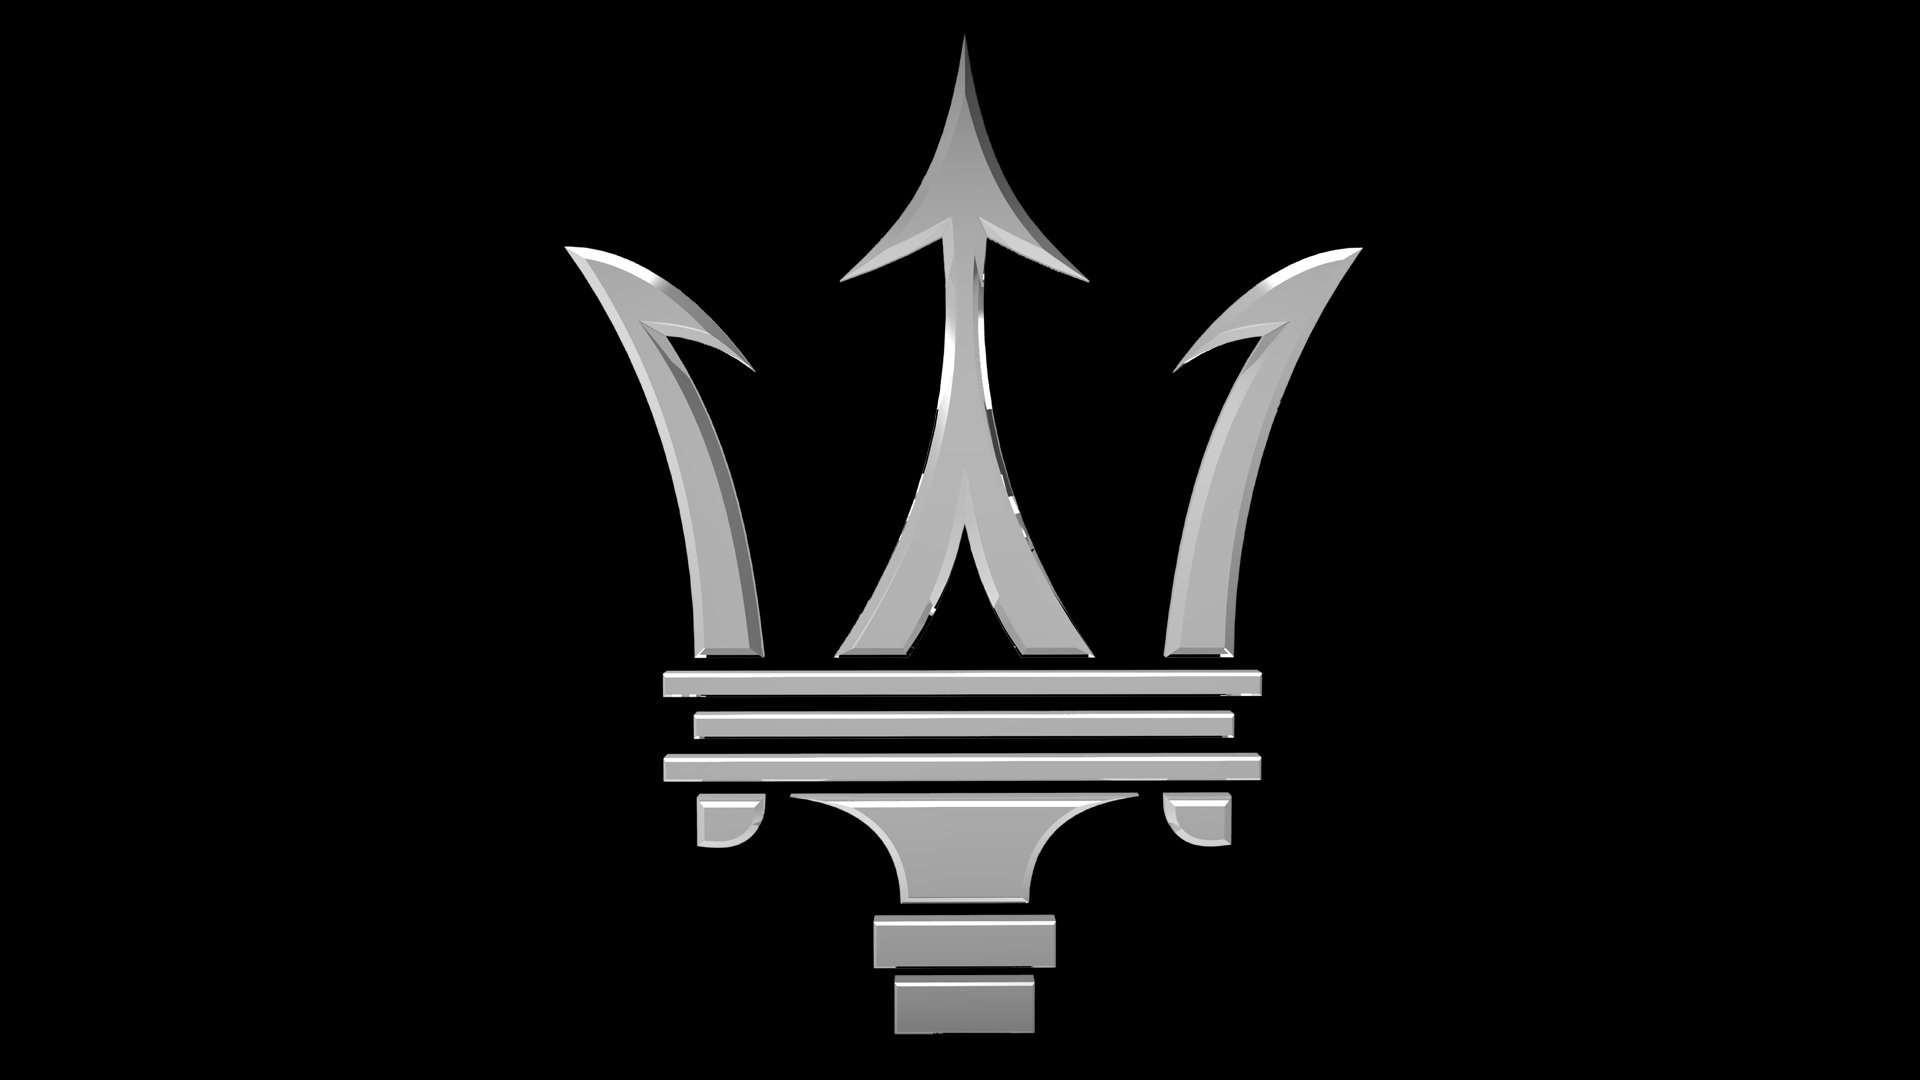 maserati logo maserati symbol meaning history and evolution. Black Bedroom Furniture Sets. Home Design Ideas